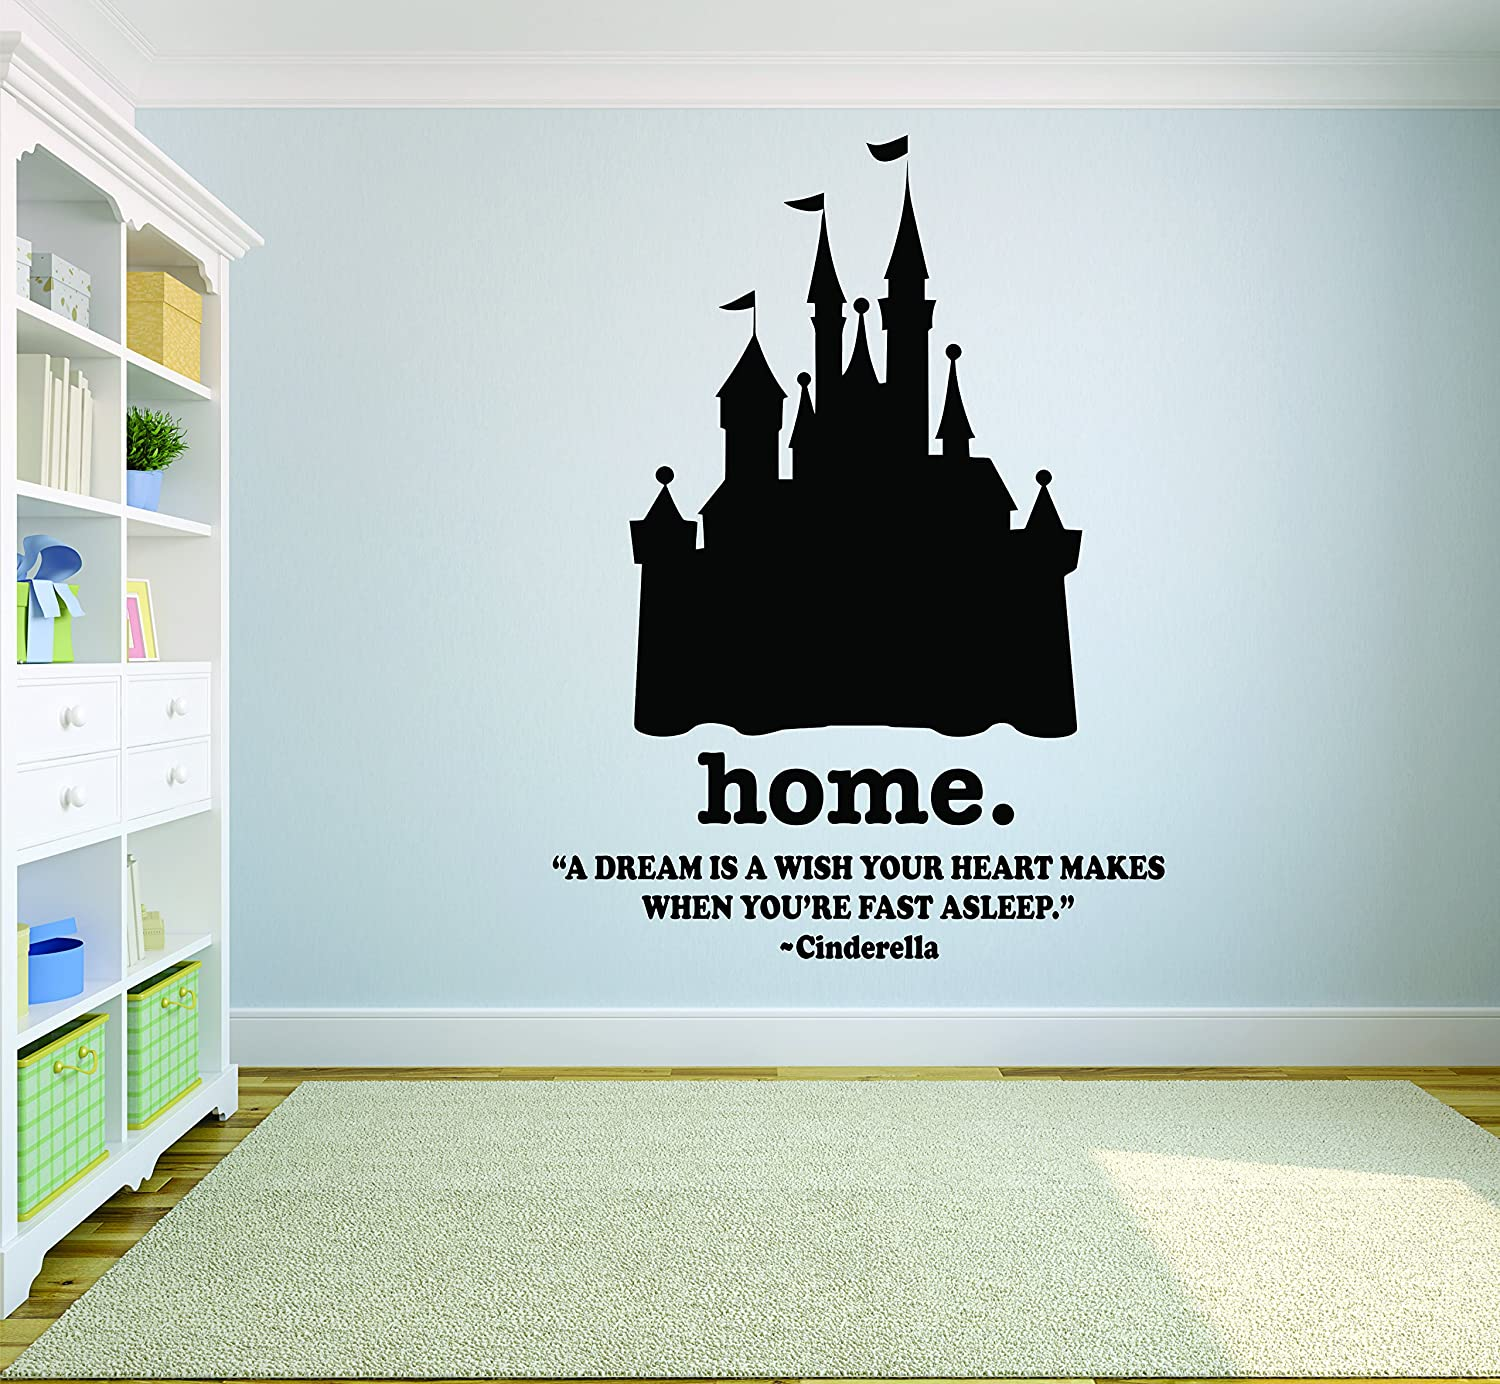 Cinderella Princess Wall Decal / Disney Wall Art Vinyl Decals Stickers for Girls Bedroom Room / Removable Designs for Girl Walls